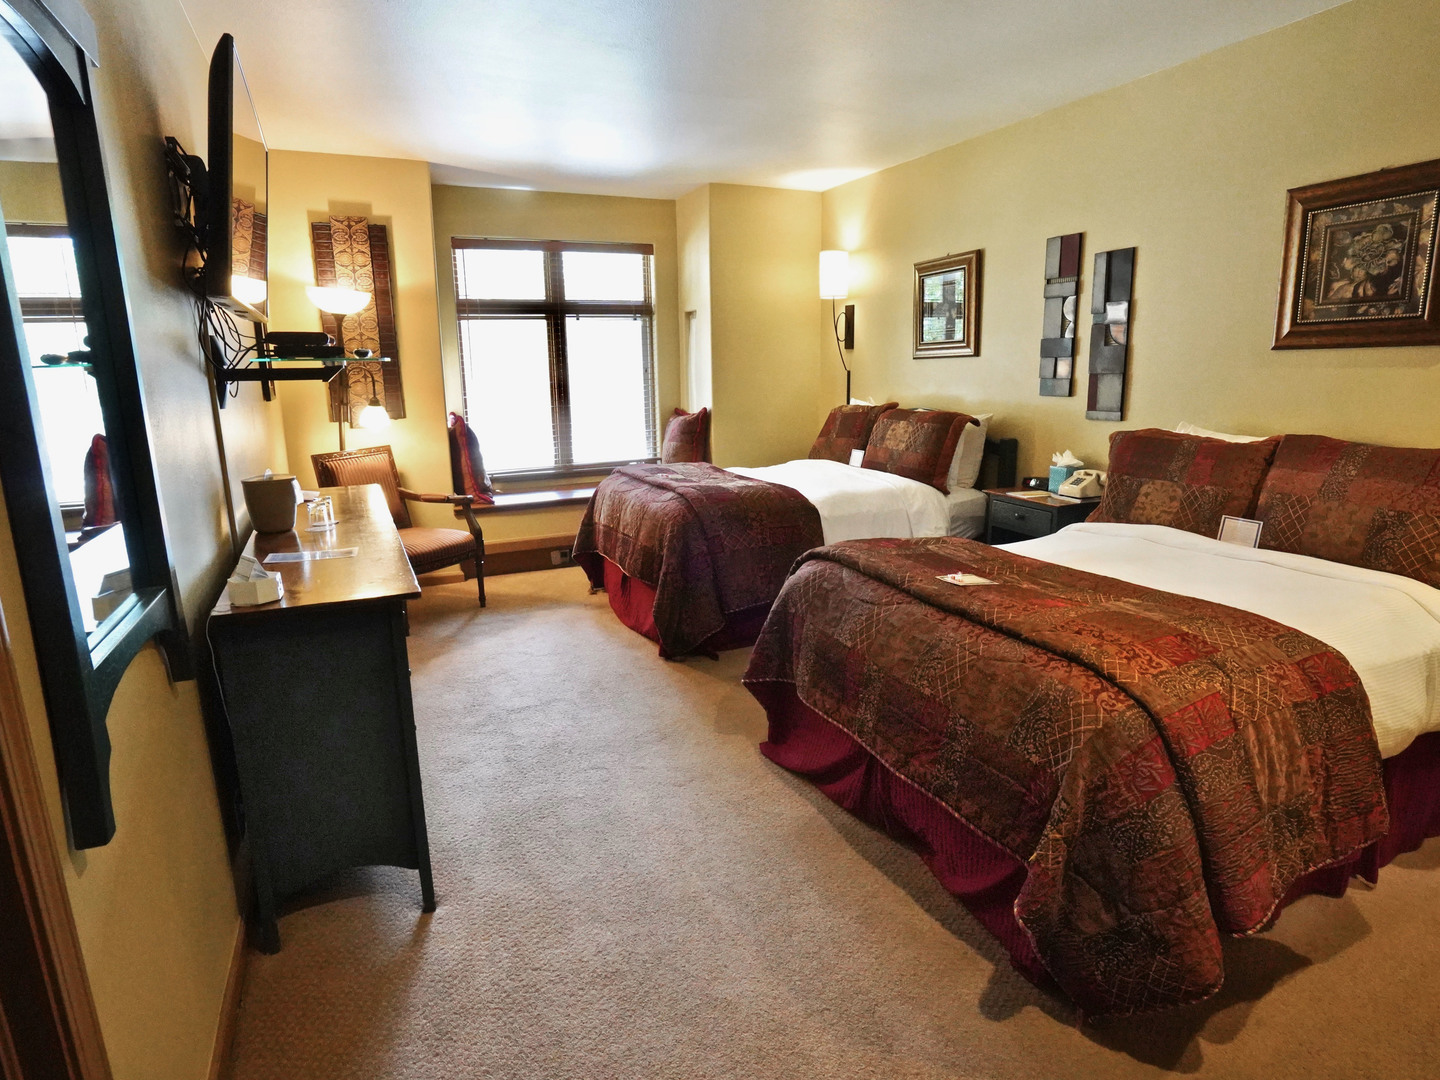 A bedroom with a large bed in a hotel room at Frisco Inn on Galena.